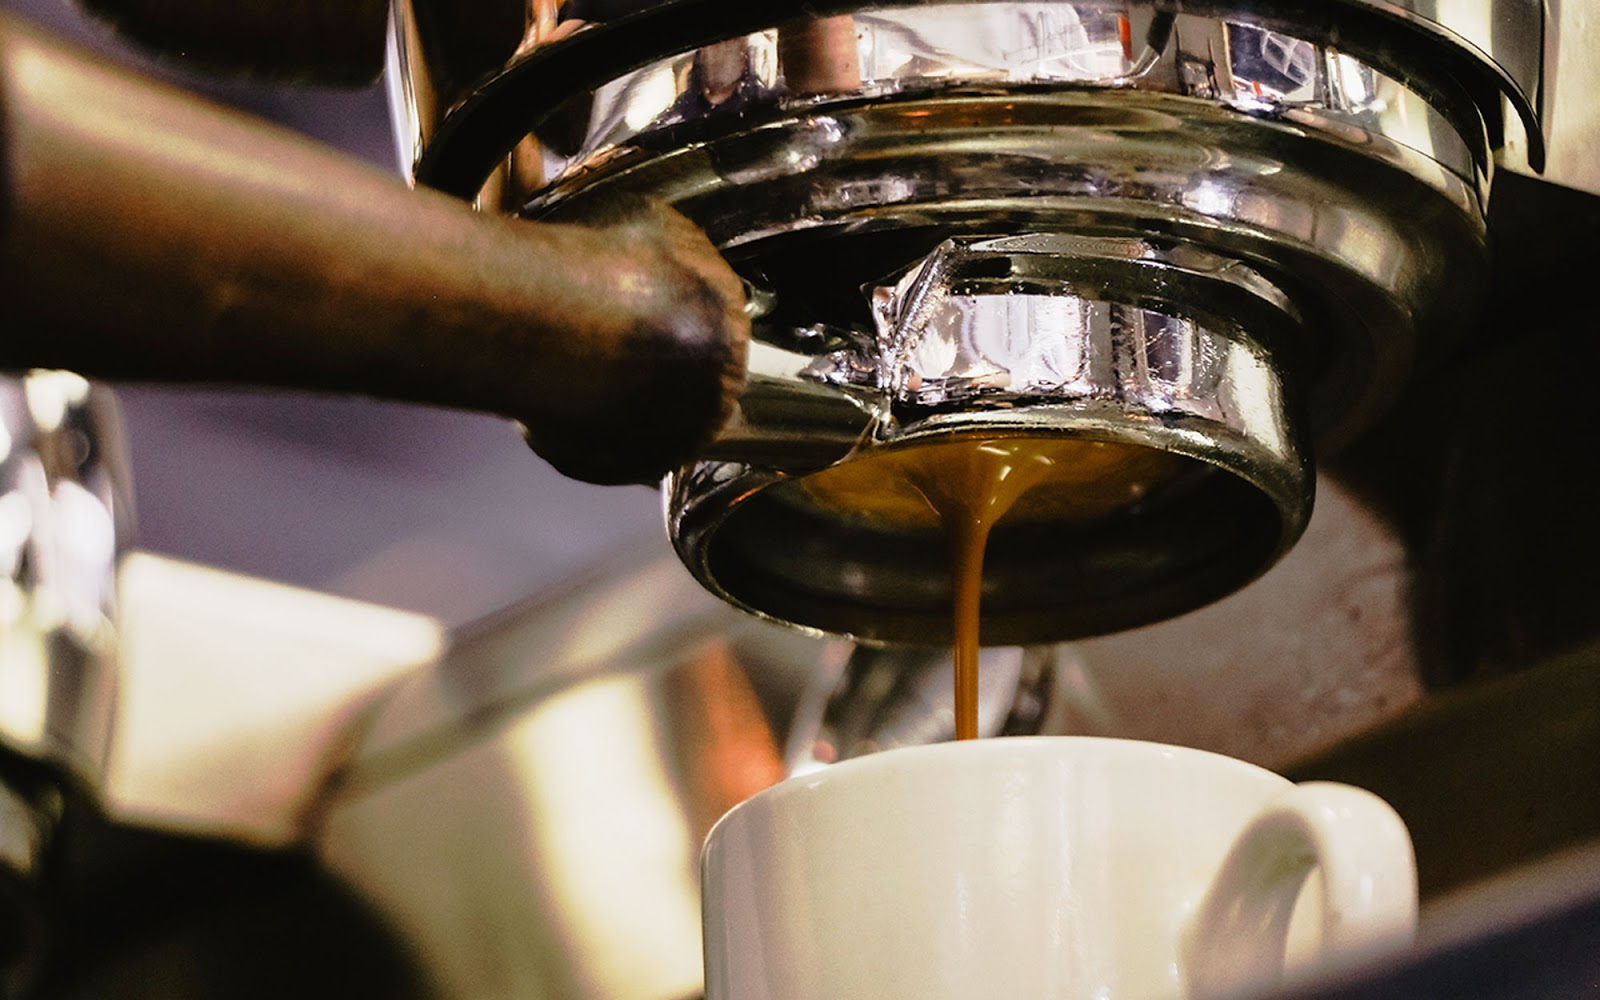 espresso being extracted from a coffee machine